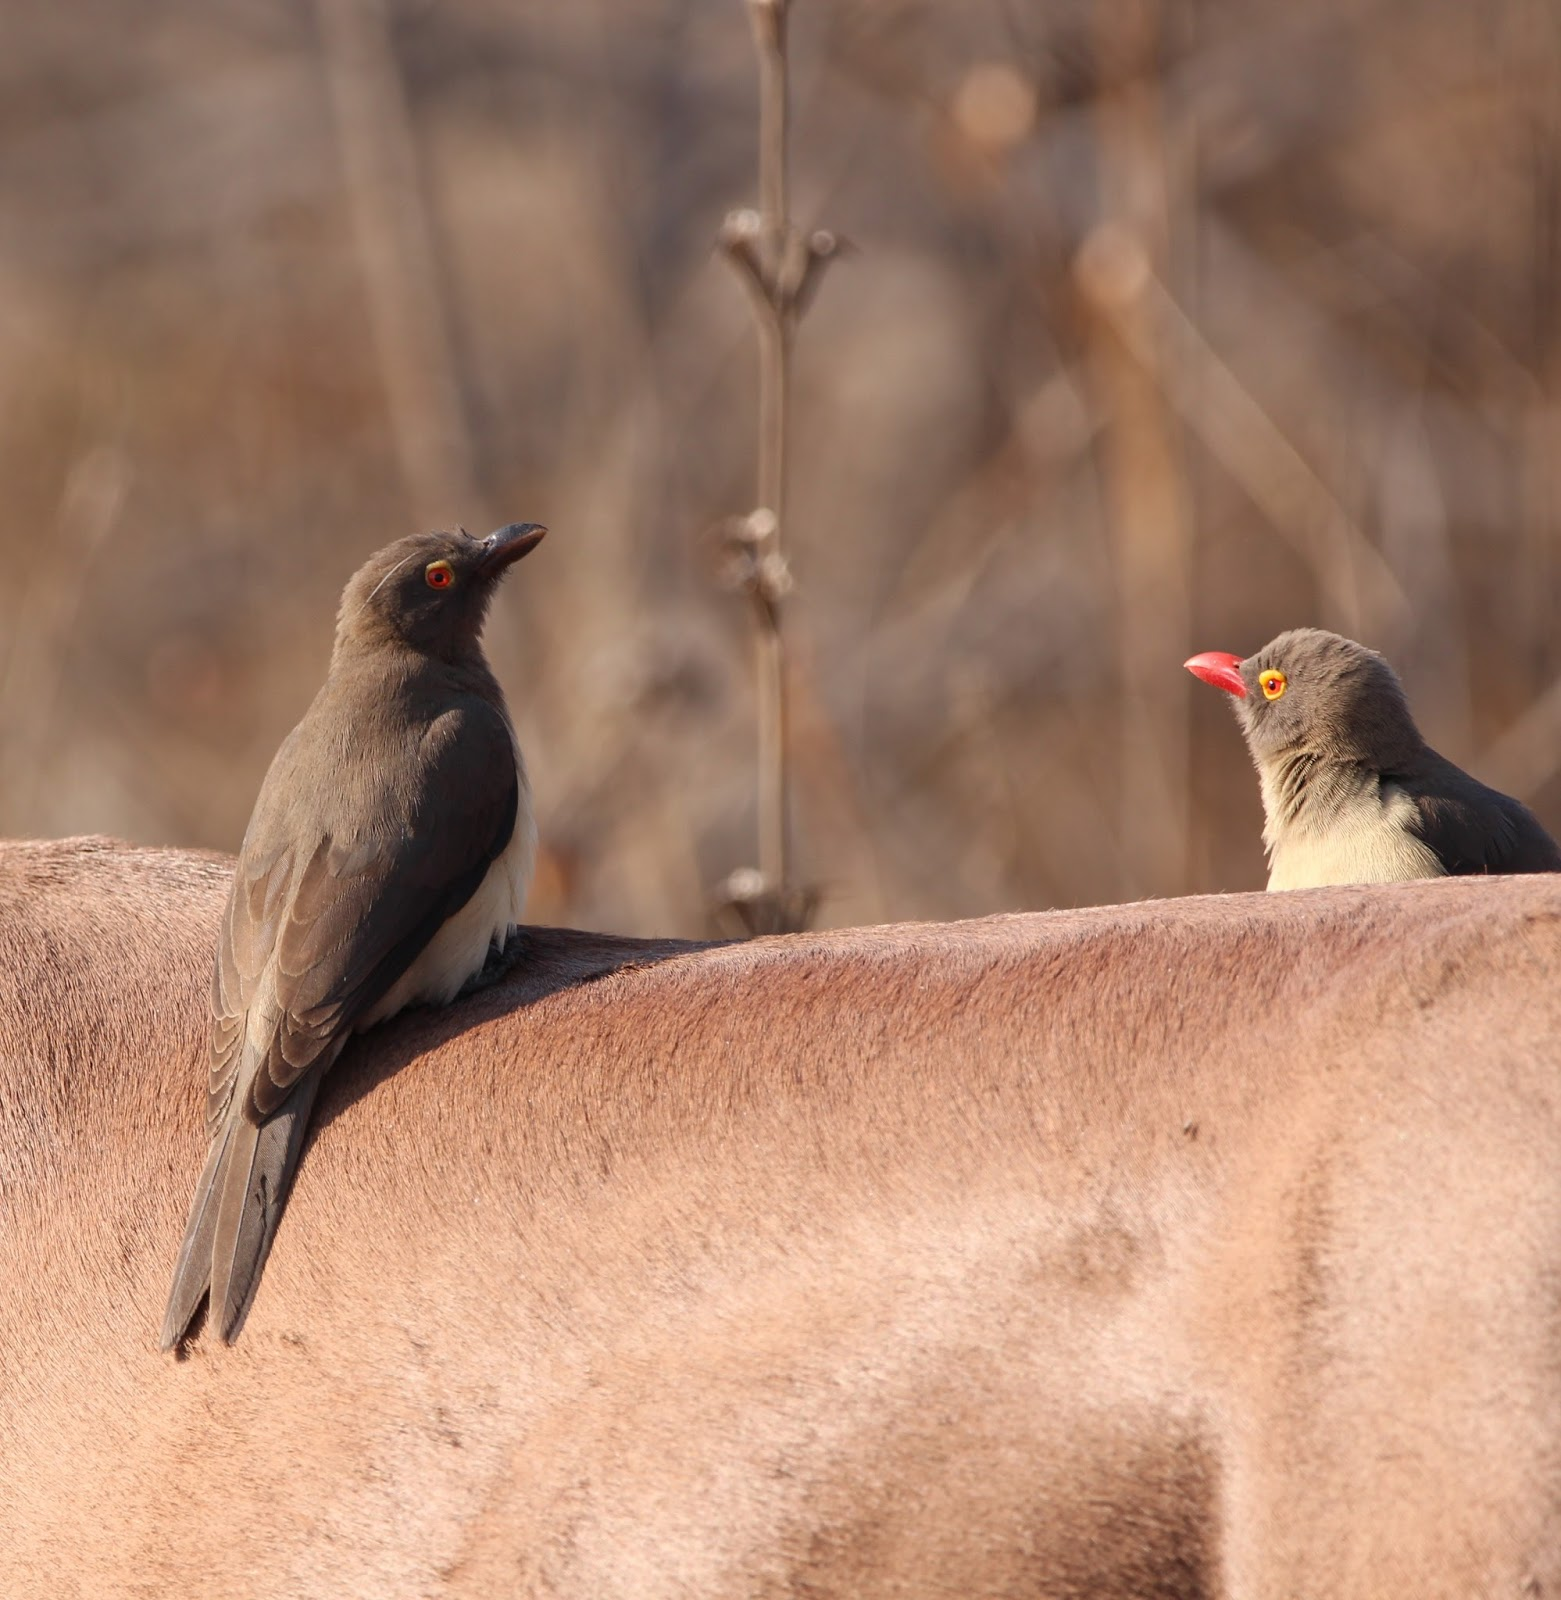 Oxpecker birds removing ticks from an animal.